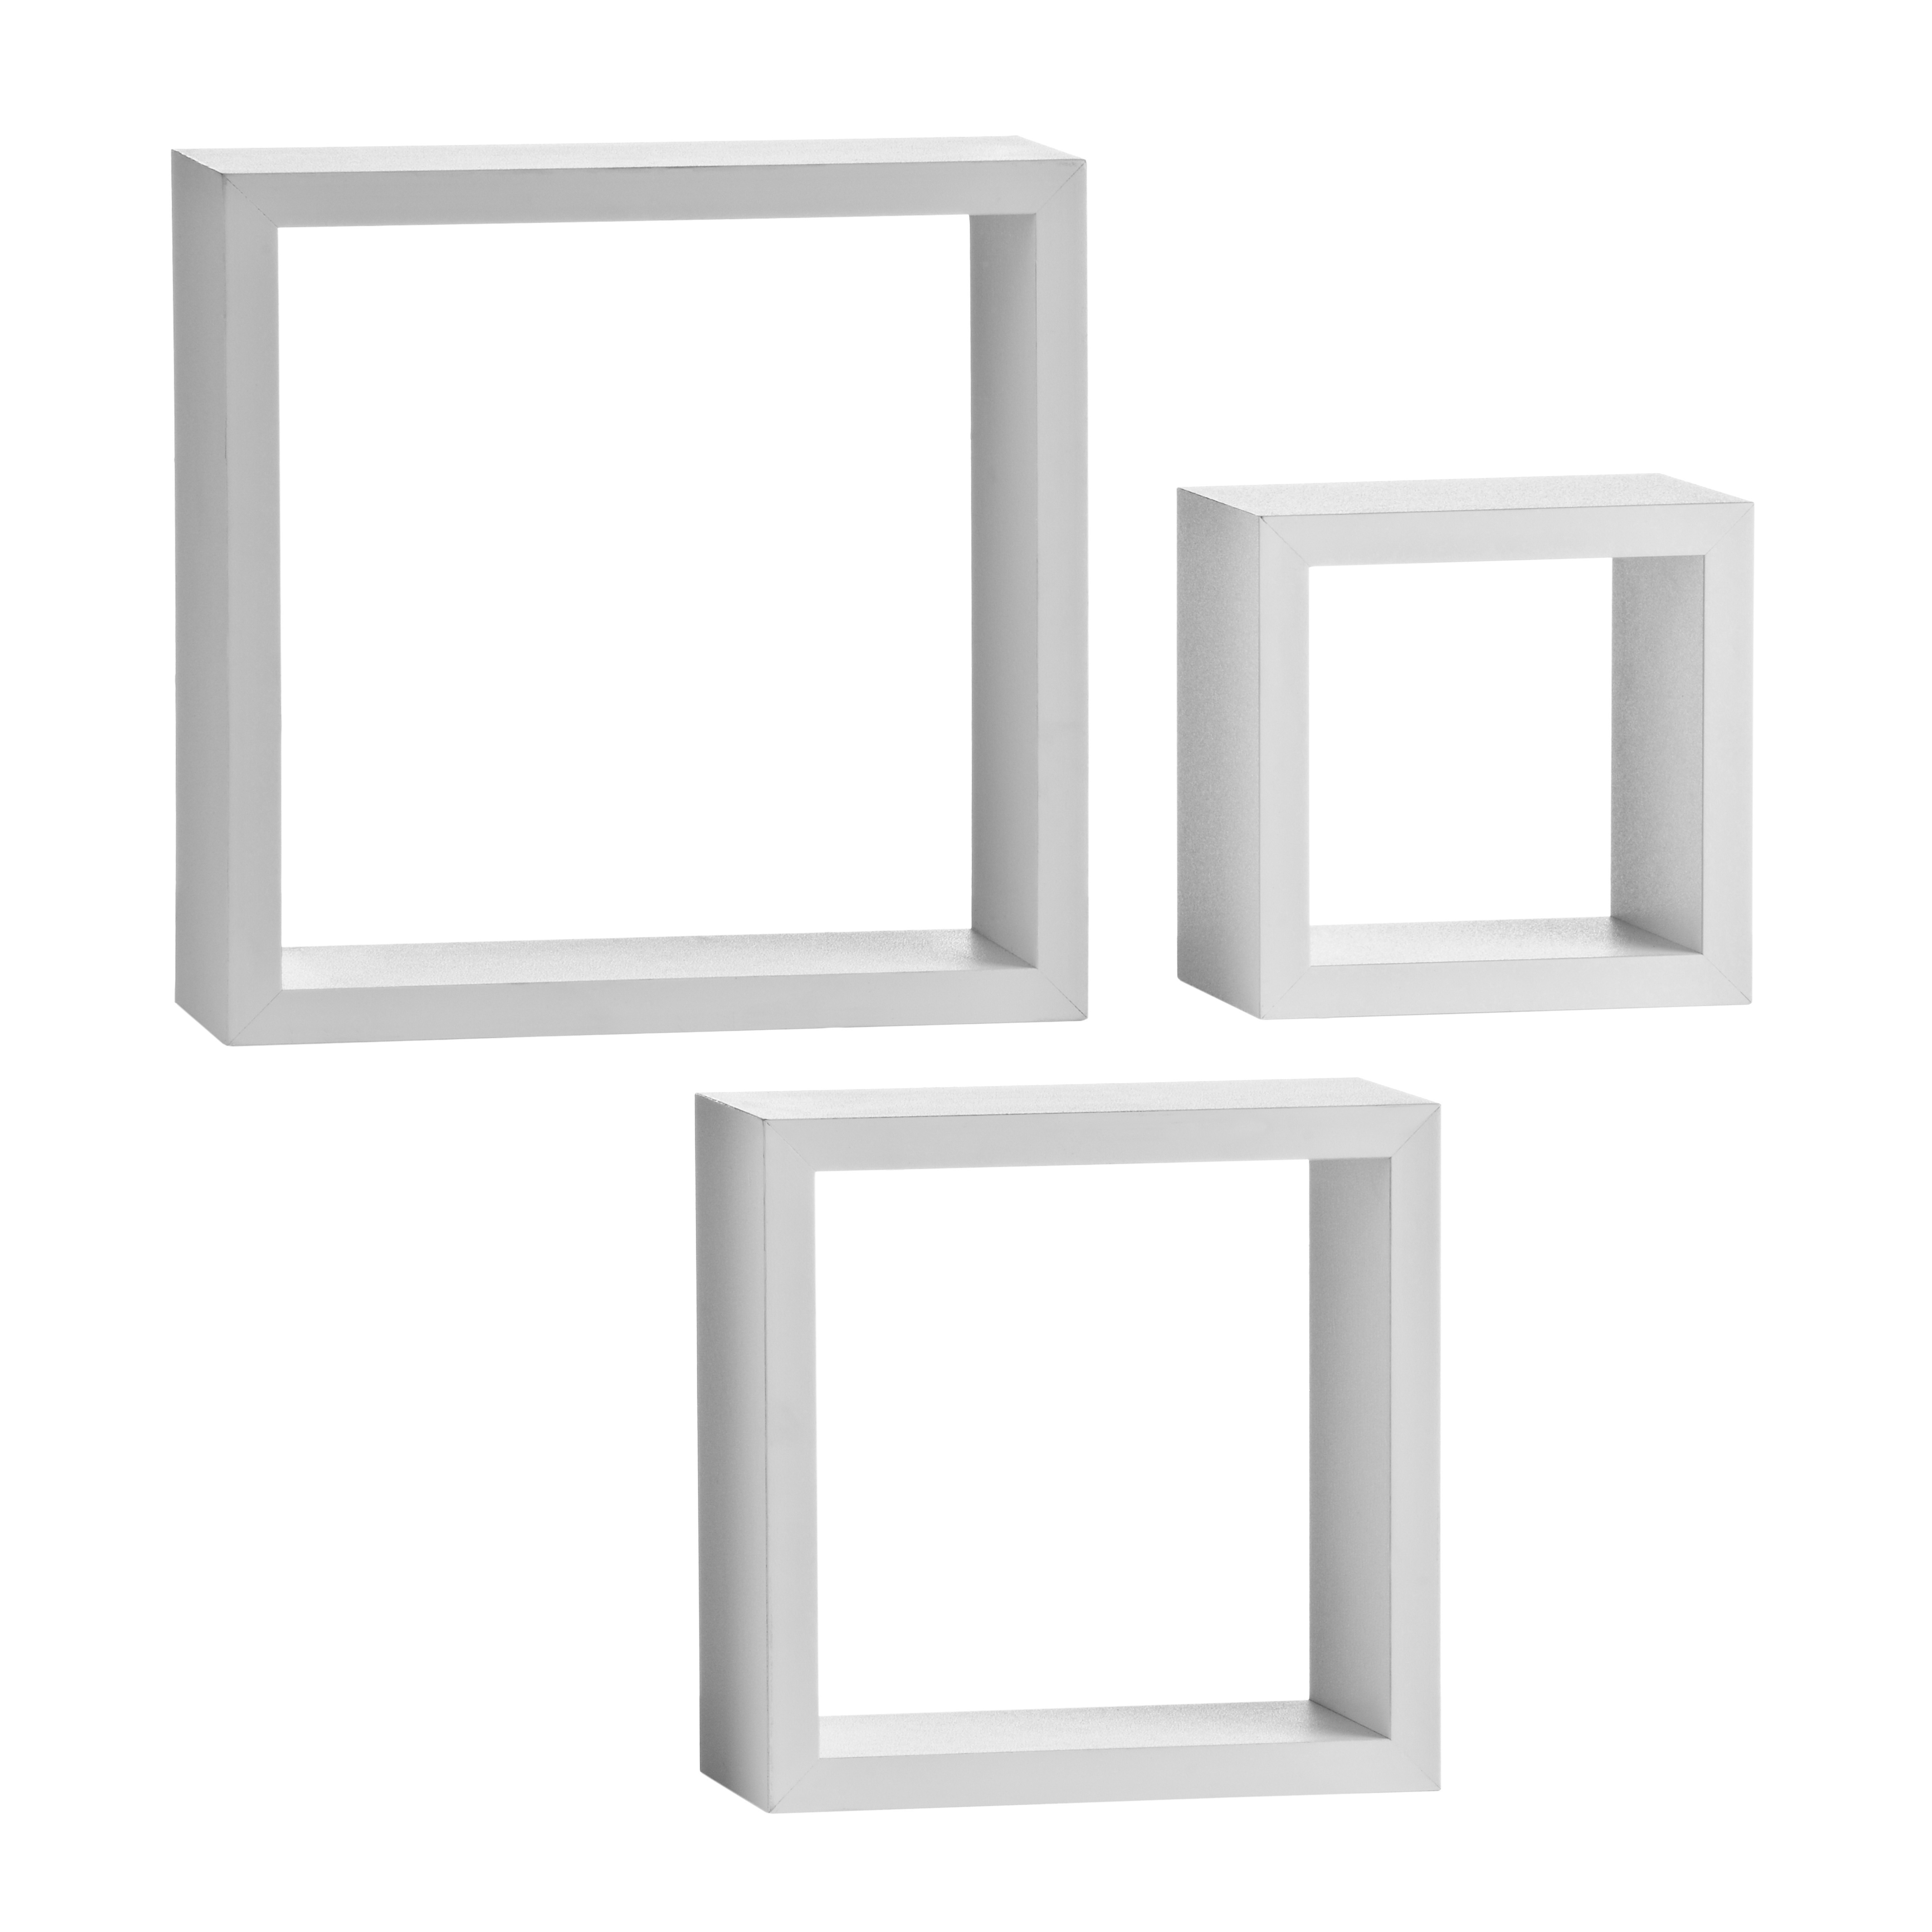 Wall Cubes - White, Set of 3